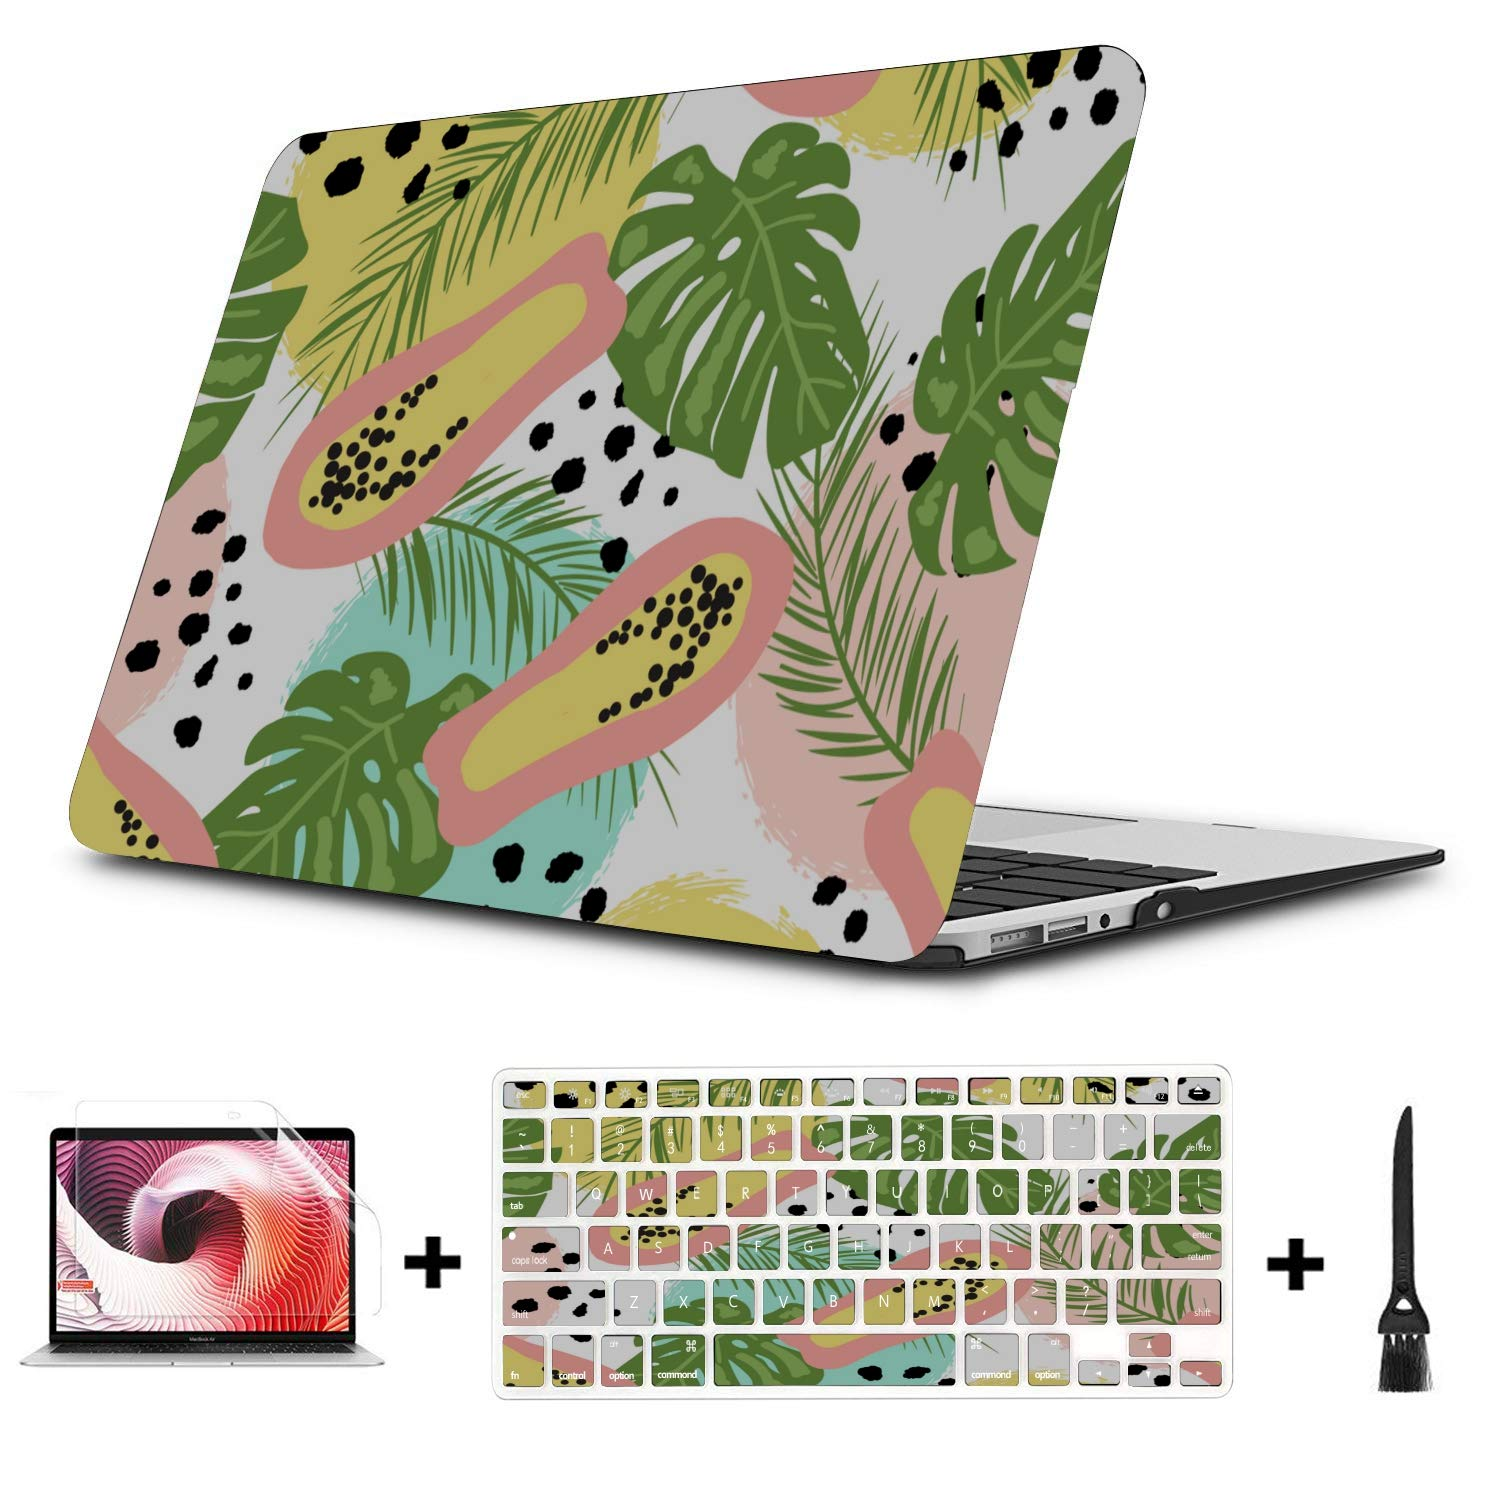 13 MacBook Case Summmer Cute Fashion Fruit Papaya Plastic Hard Shell Compatible Mac Air 11 Pro 13 15 MacBook Pro 15in Case Protection for MacBook 2016-2019 Version